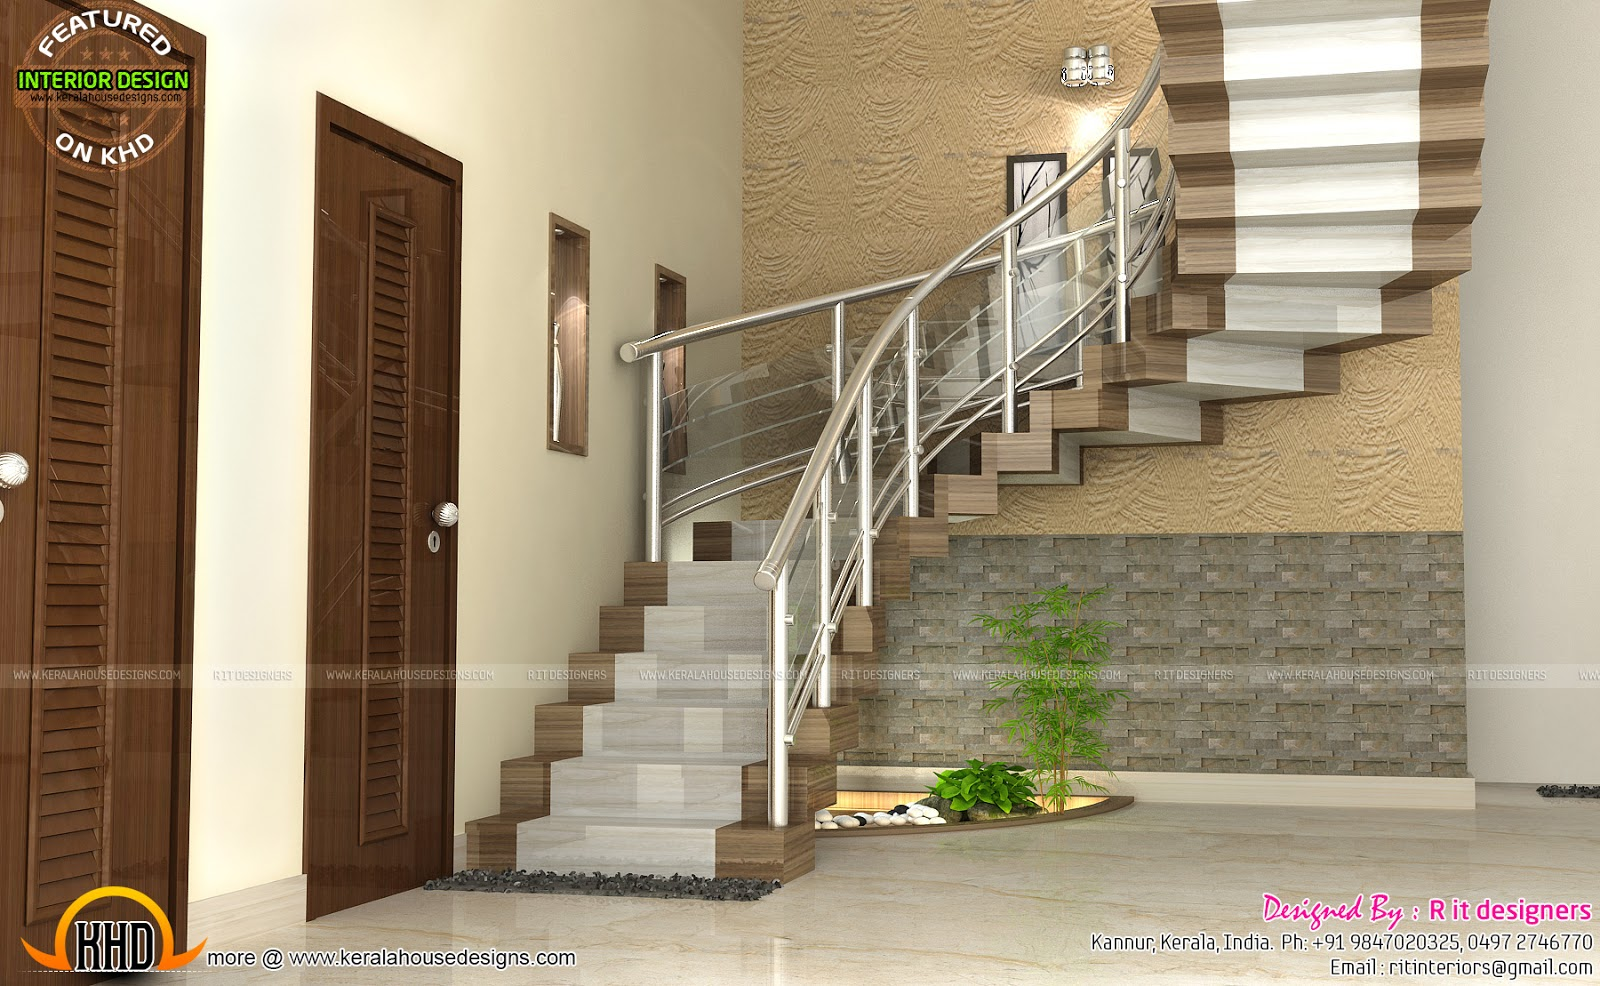 Modular kitchen, bedroom and staircase interior